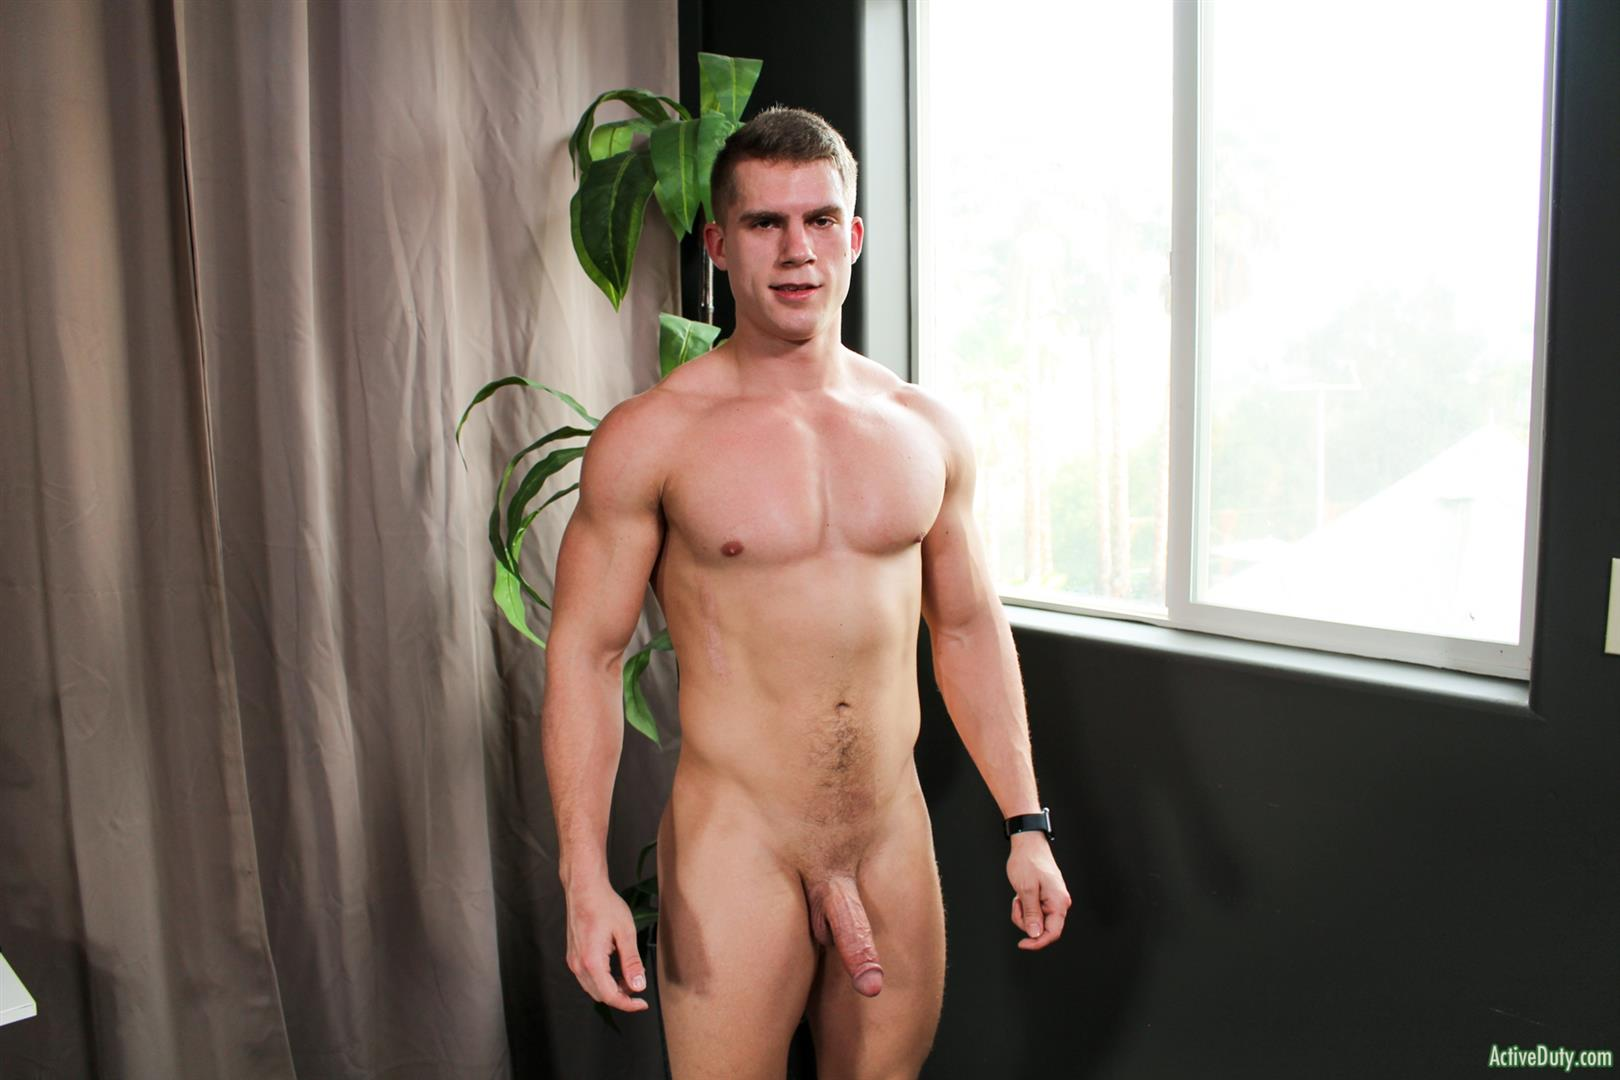 Active-Duty-Danny-D-Naked-US-Marine-Jerking-Off-His-Big-Cock-11 Naked Muscular US Marine Jerking Off His Big Cock